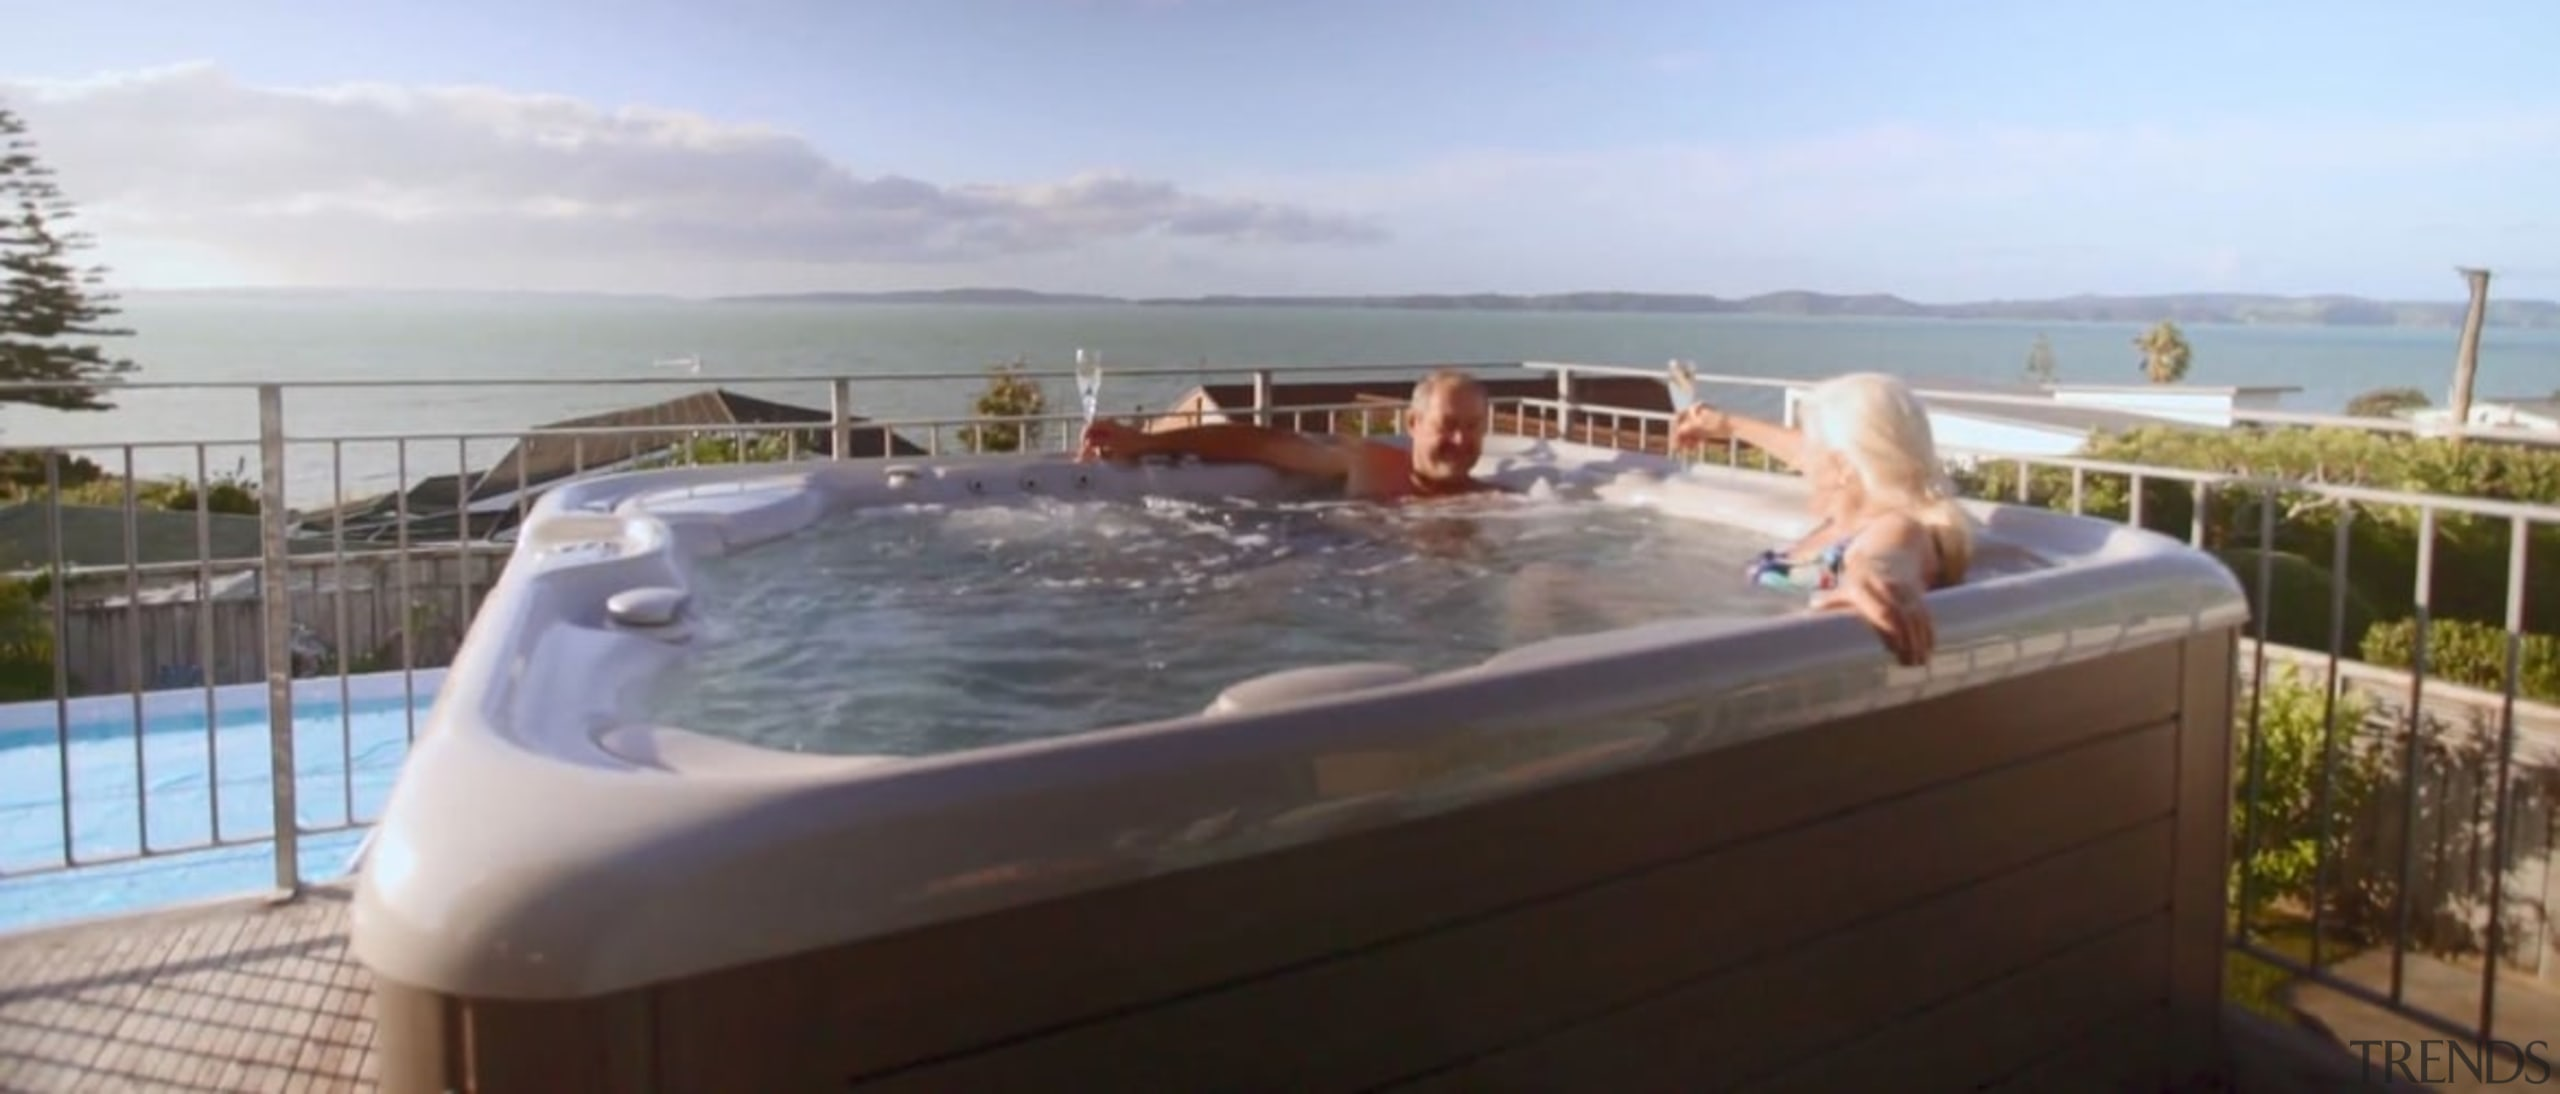 See more from Hot Spring Spas bathtub, hot tub, jacuzzi, leisure, property, swimming pool, gray, white